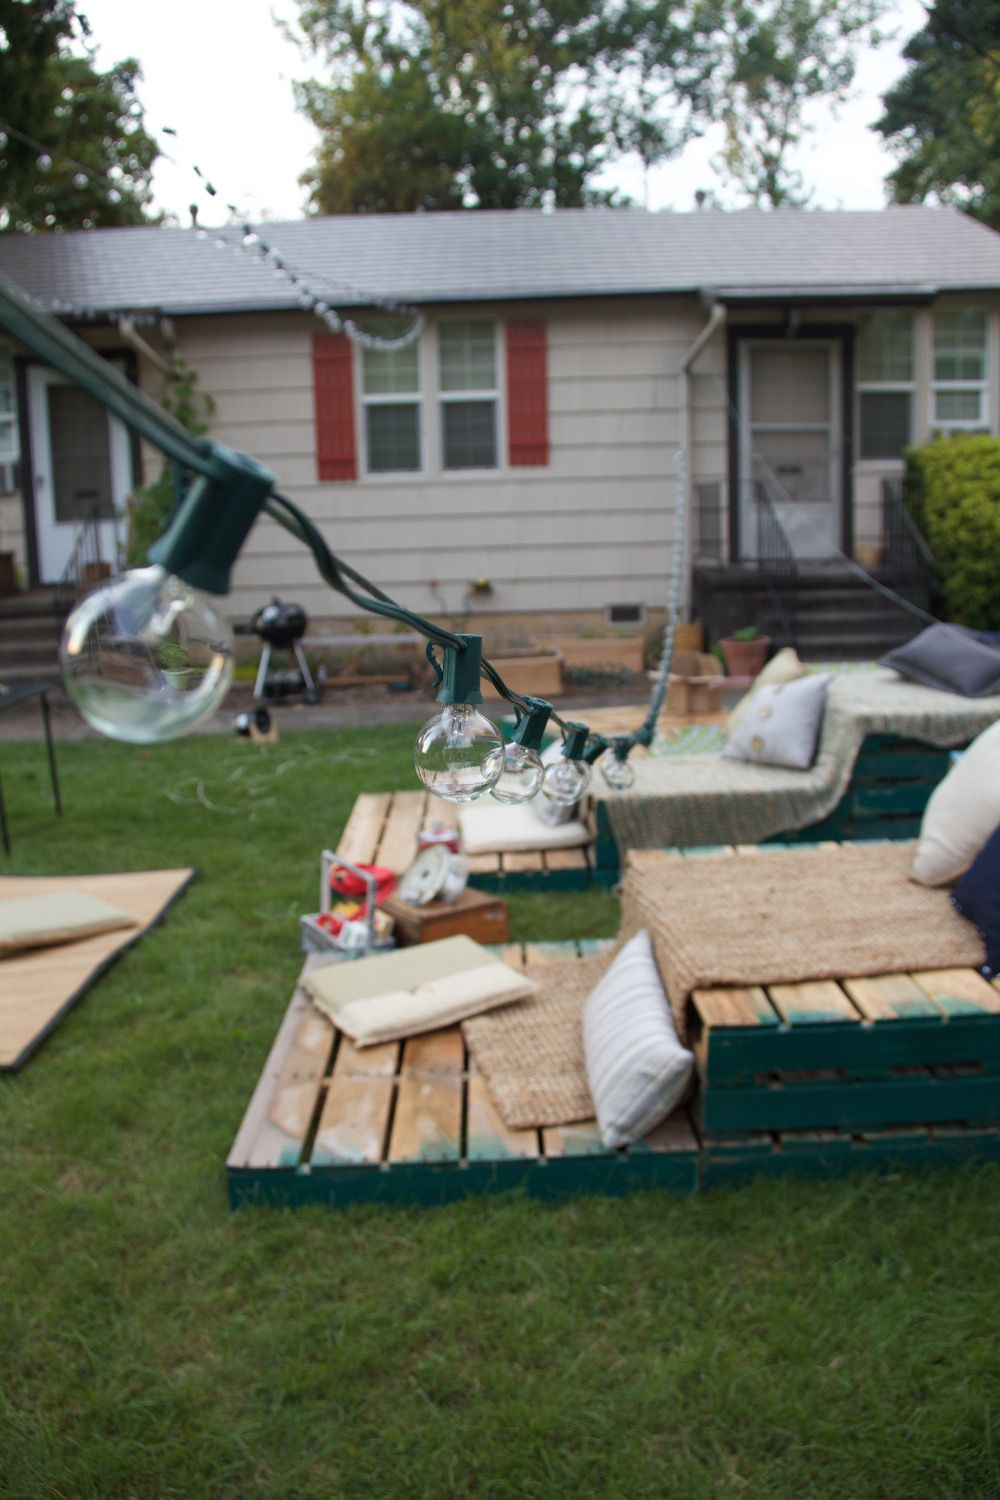 Outdoor movie night ideas. Pallets for seating- brilliant! - Night At The Movies - Pinterest Outdoor Movie Nights, Pallets